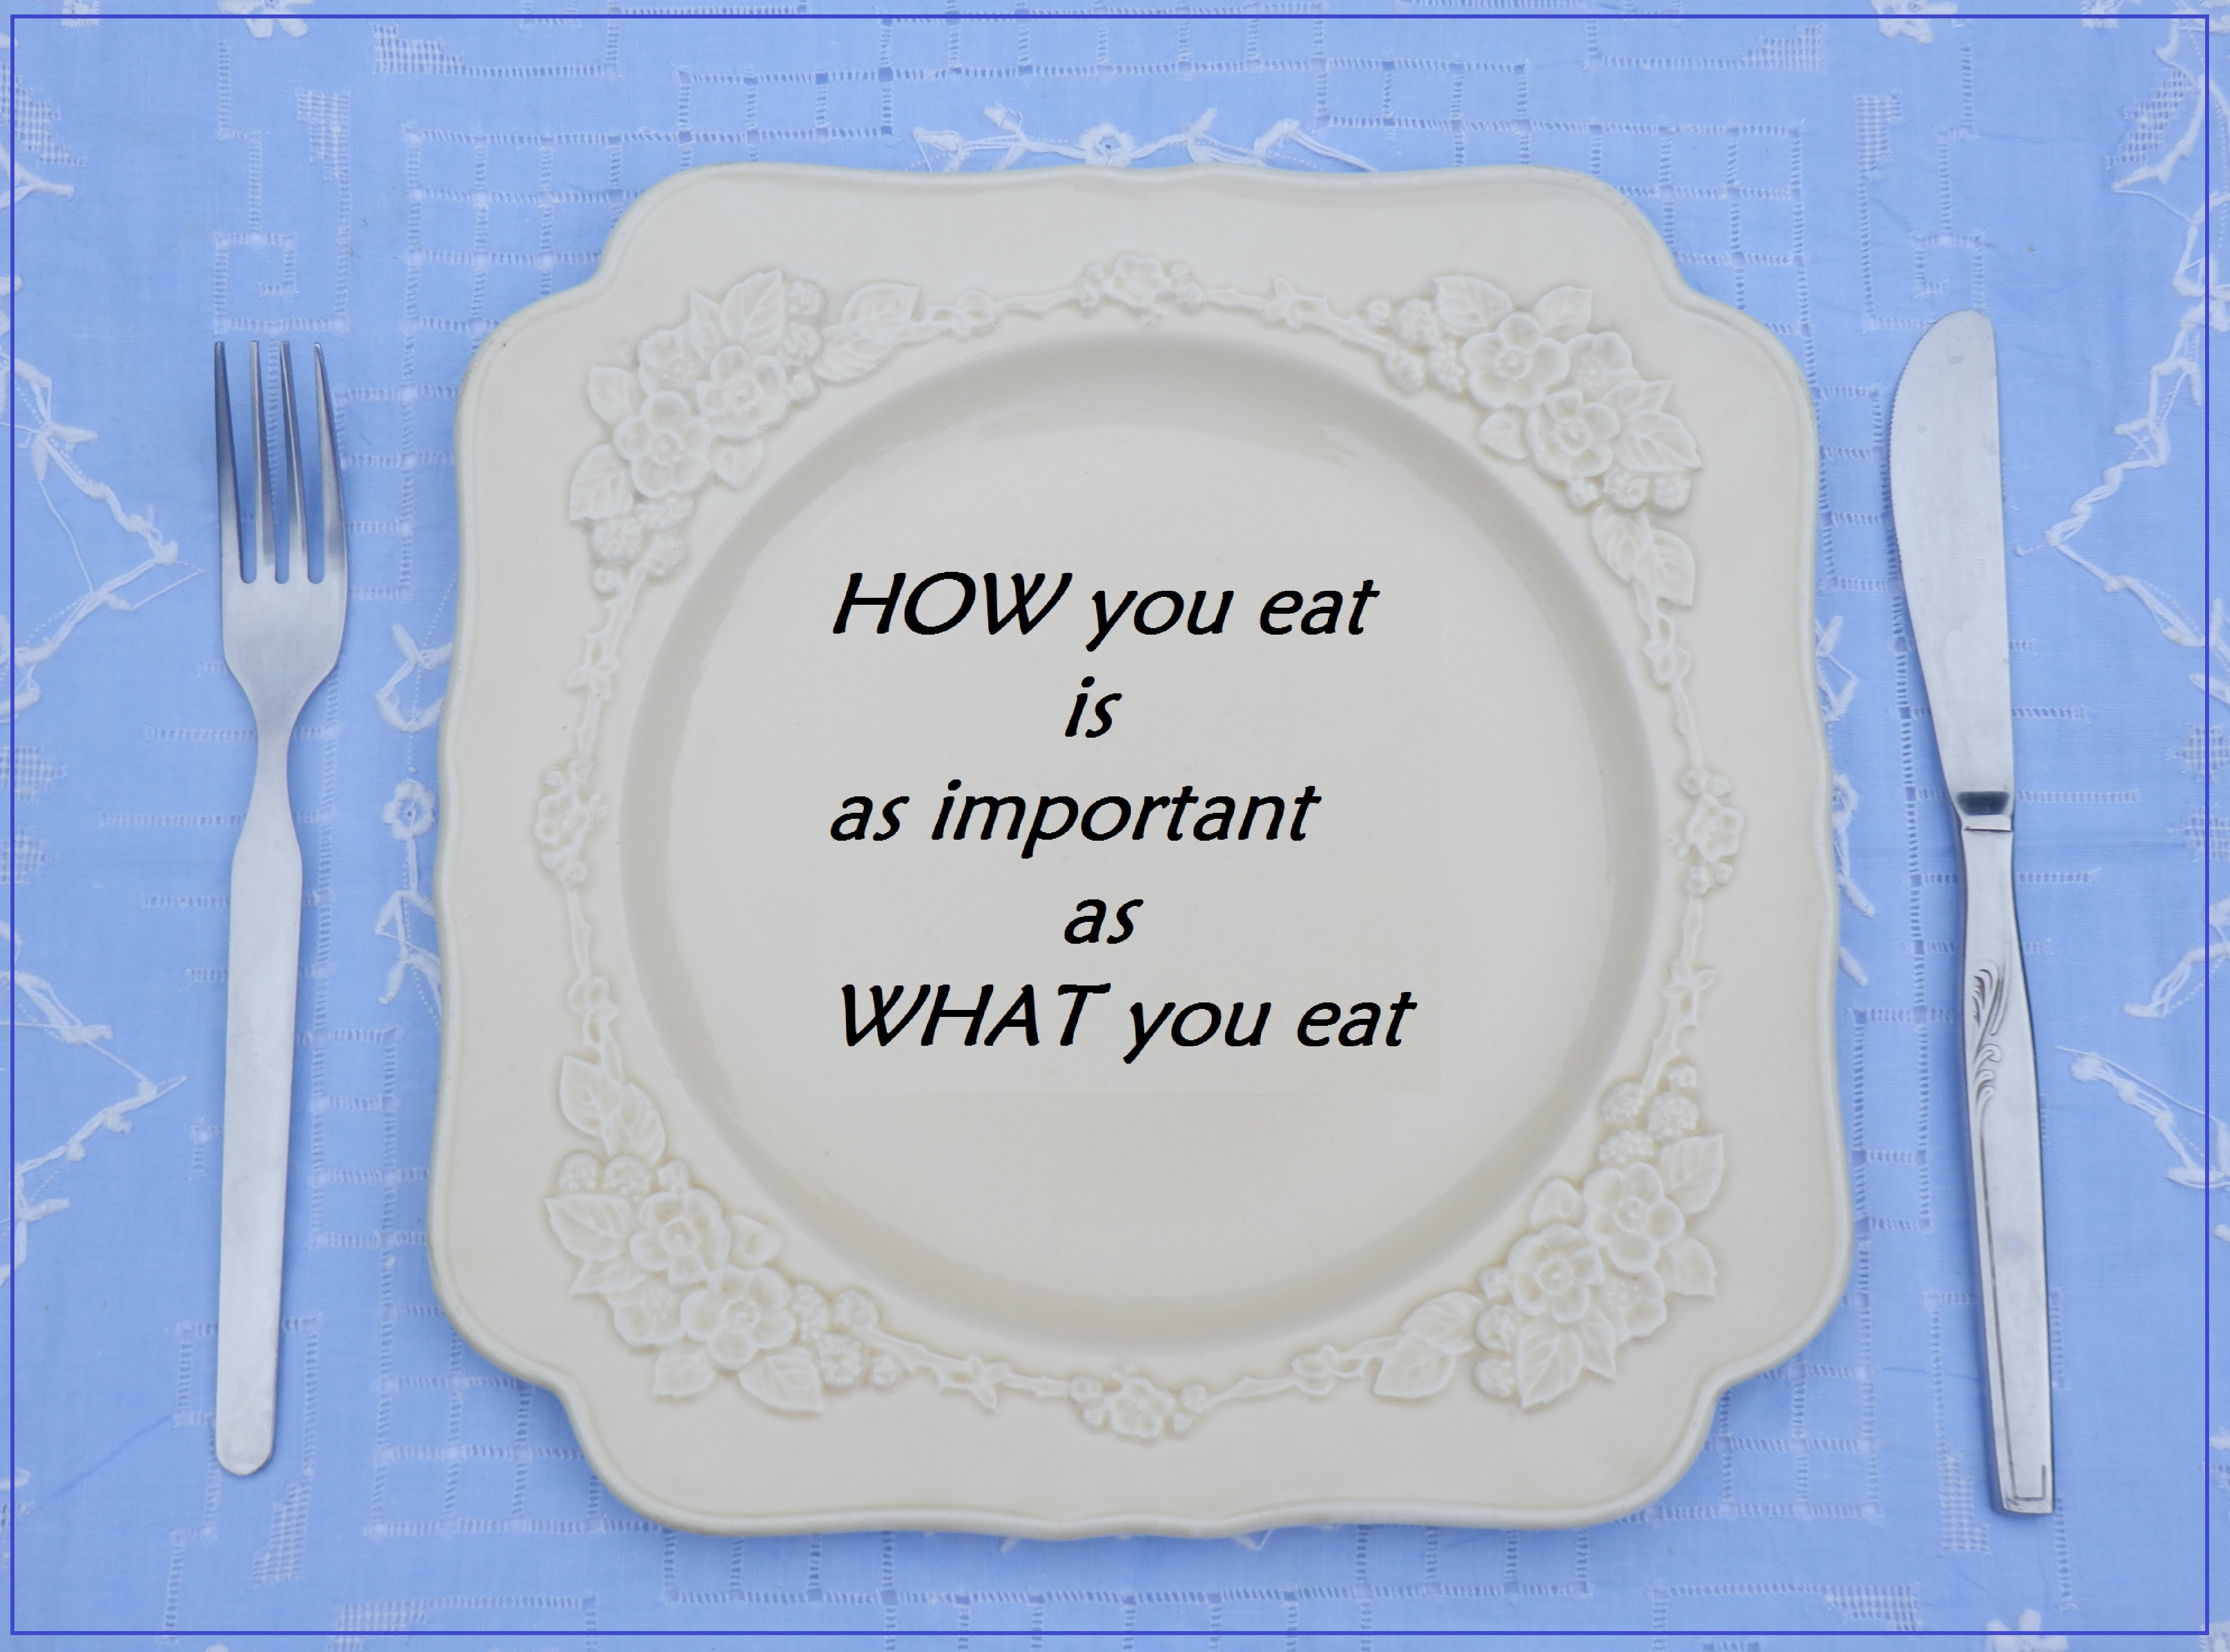 HOW you eat is just as important as WHAT you eat